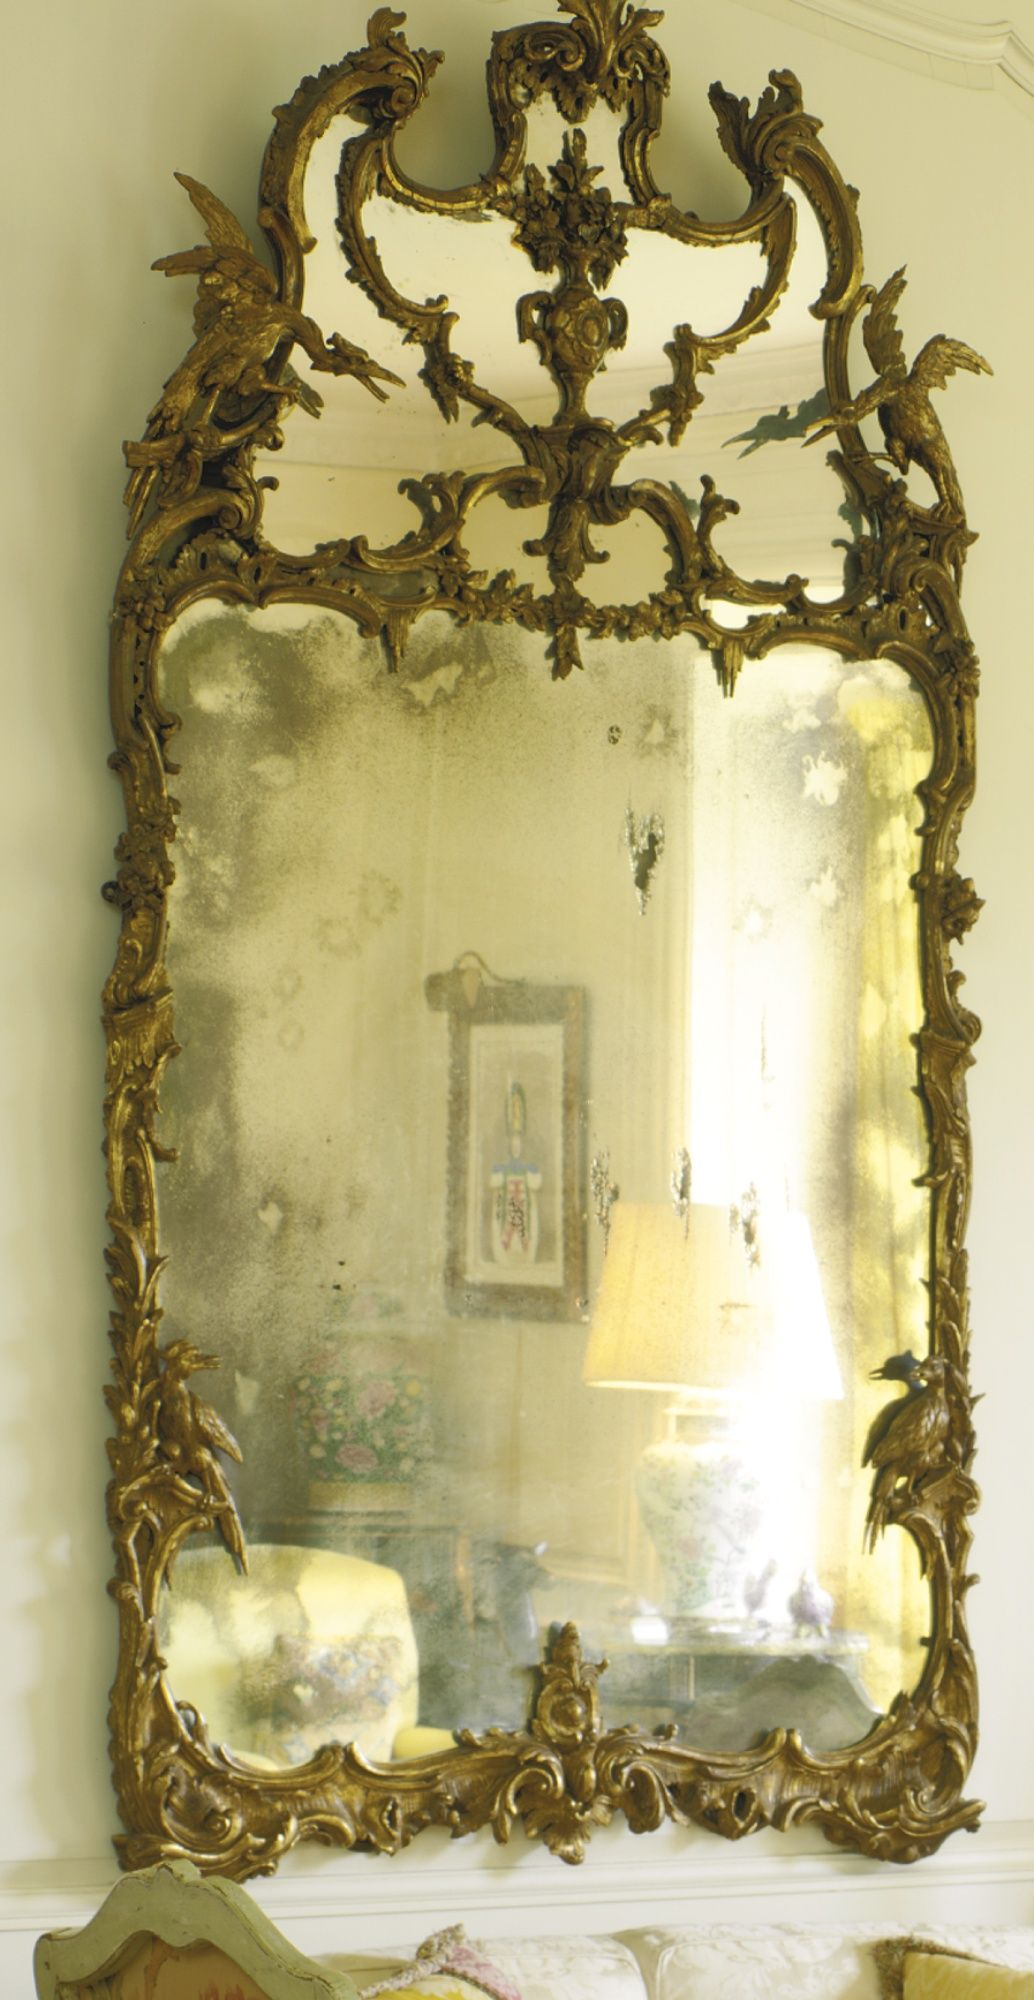 Dating old mirrors